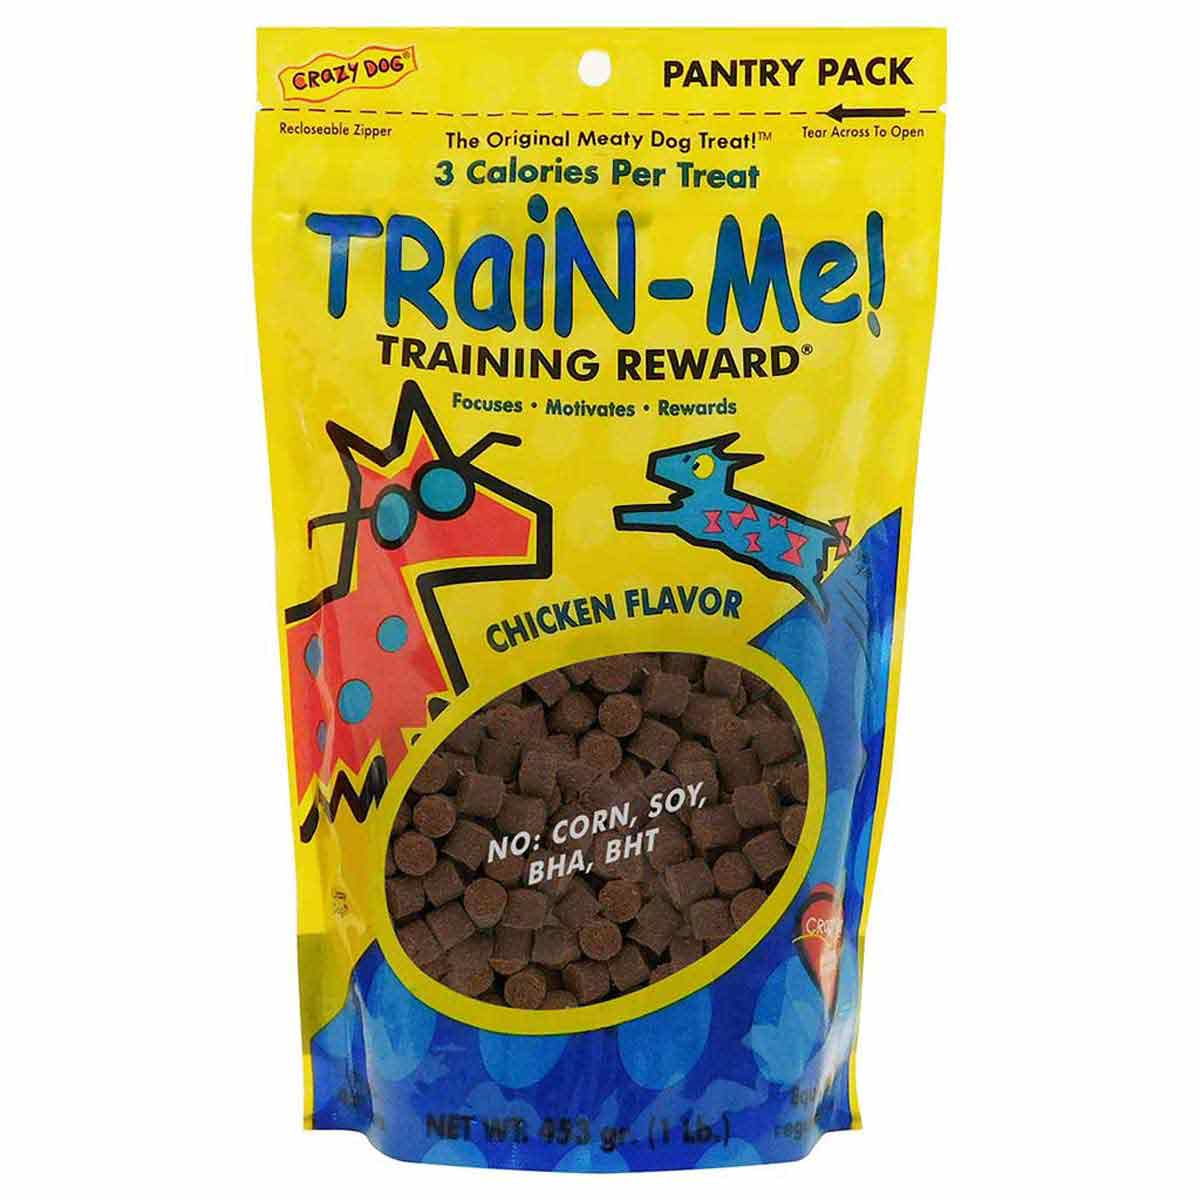 Crazy Dog Train Me! Treats for Dogs - Chicken 1 lb